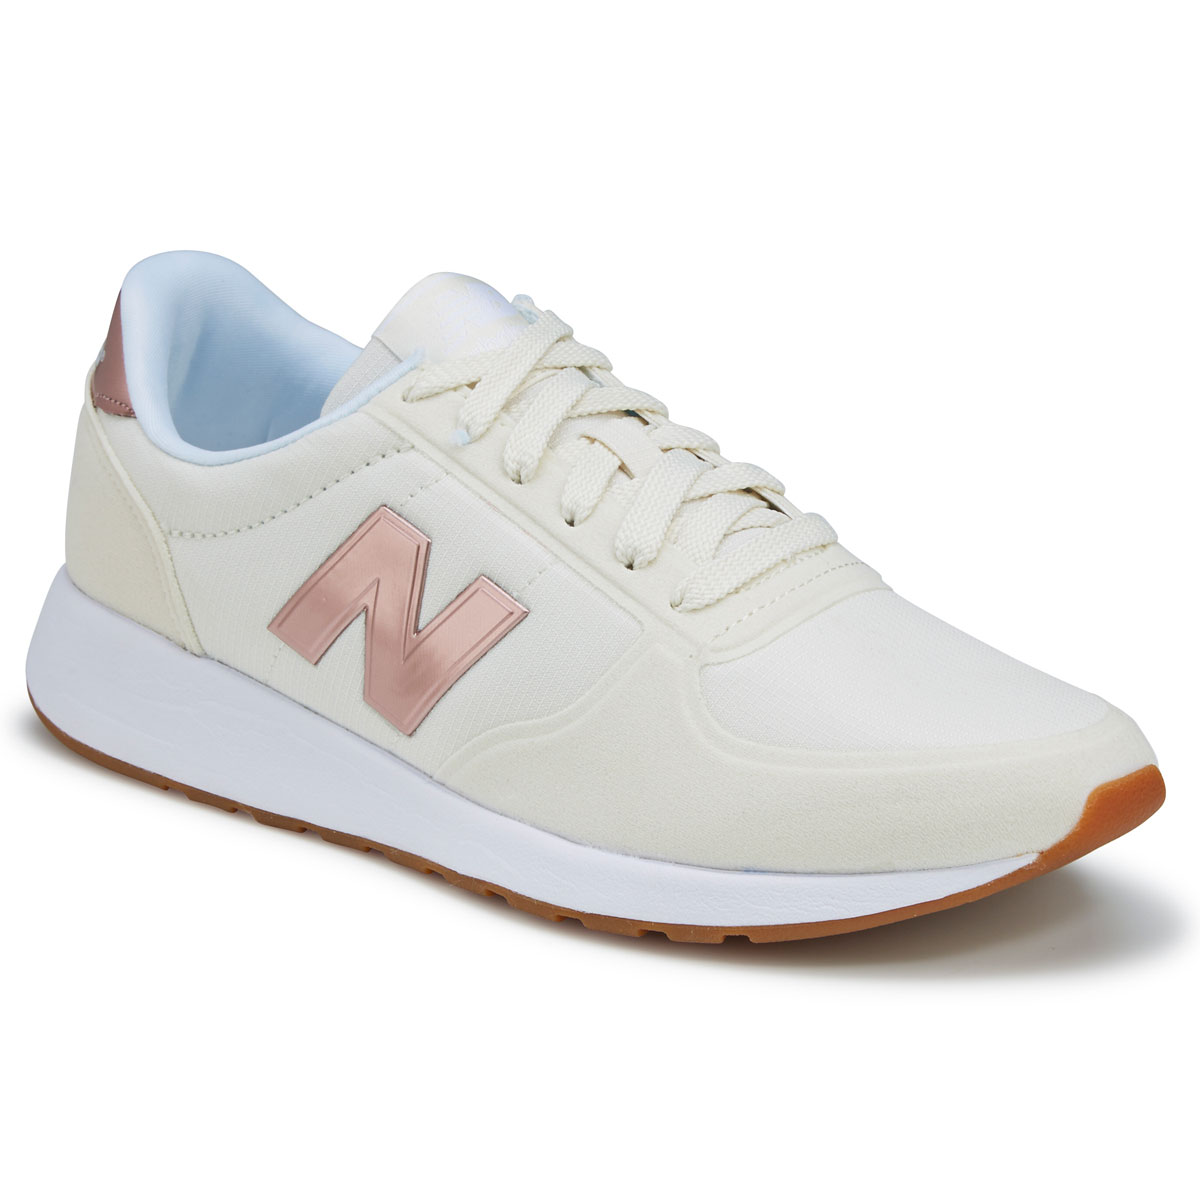 New Balance Women's 215V1 Sneakers - White, 10